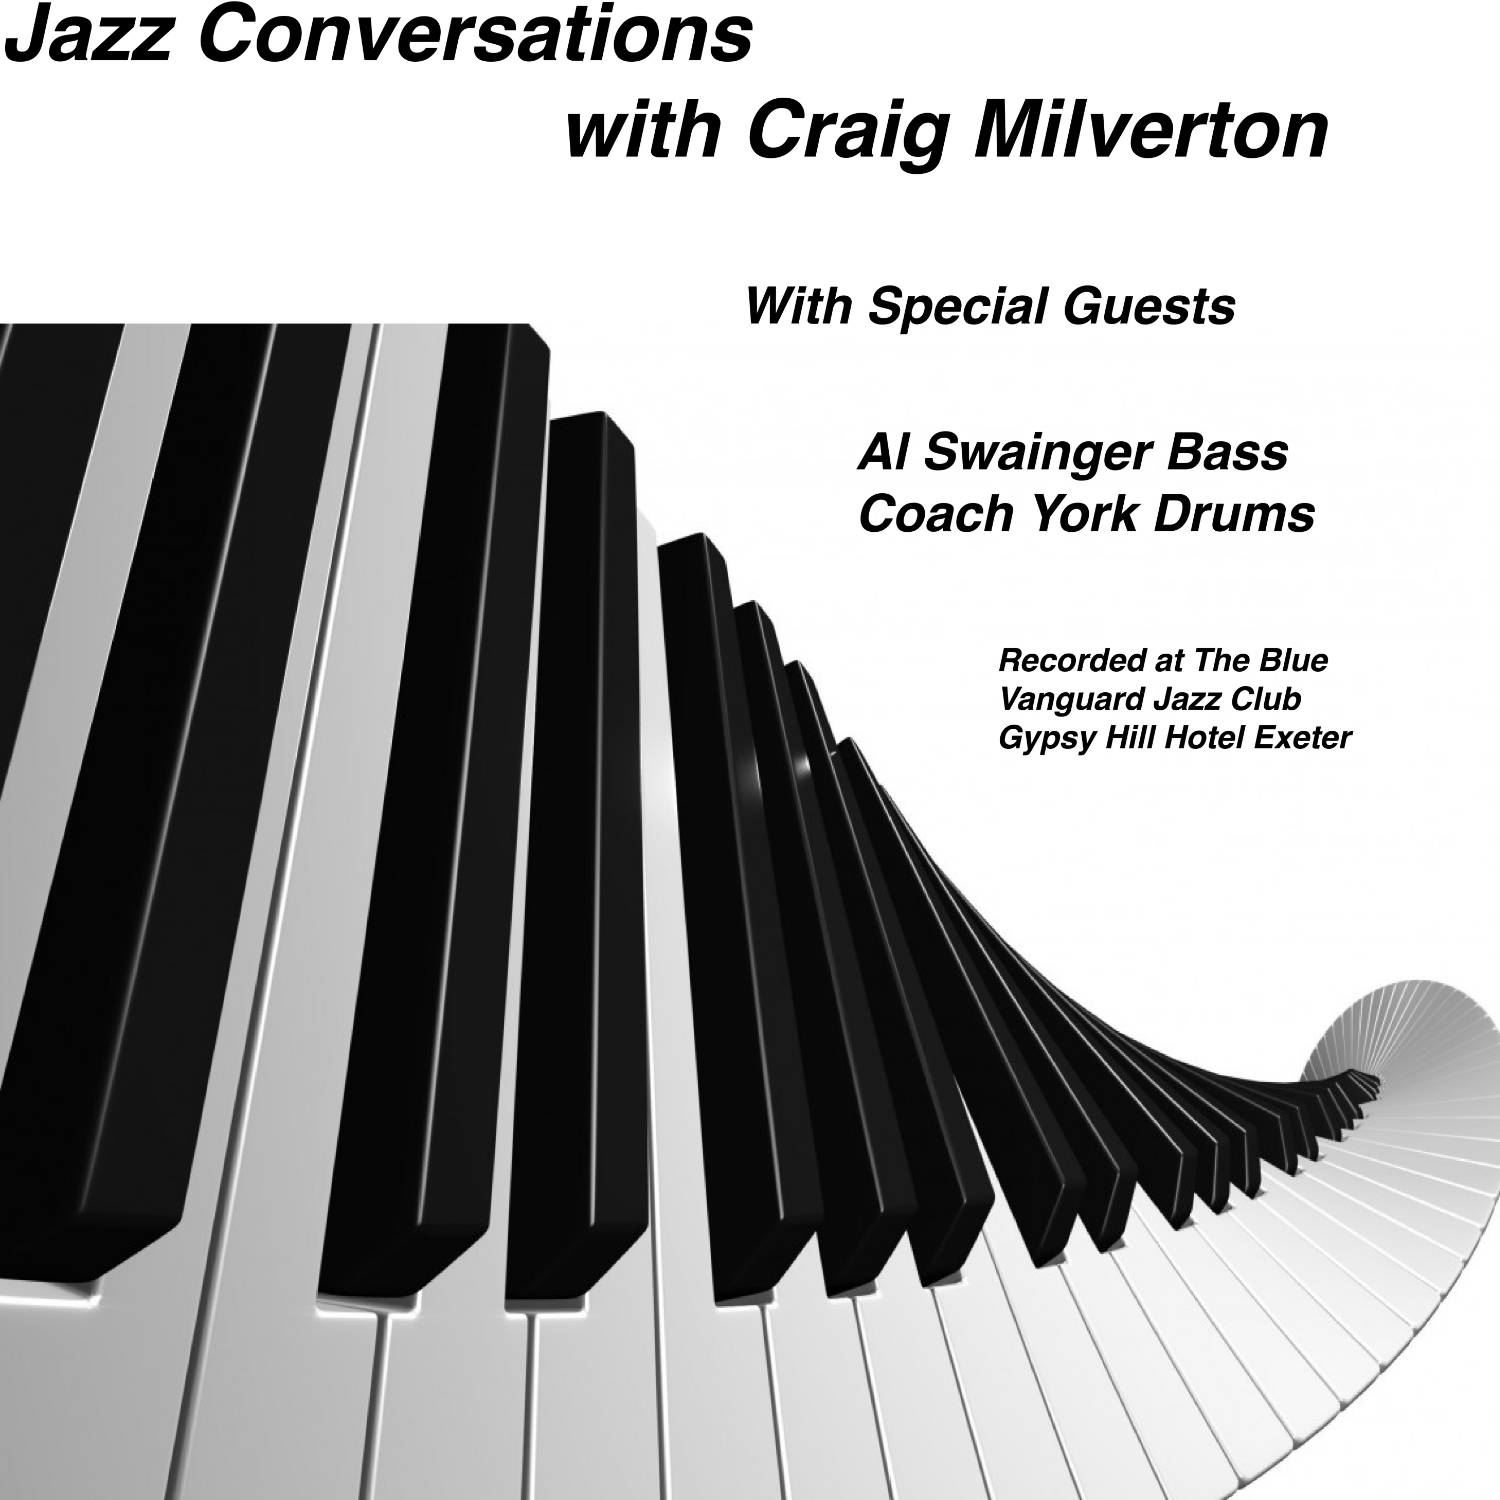 The jazzconversations's Podcast